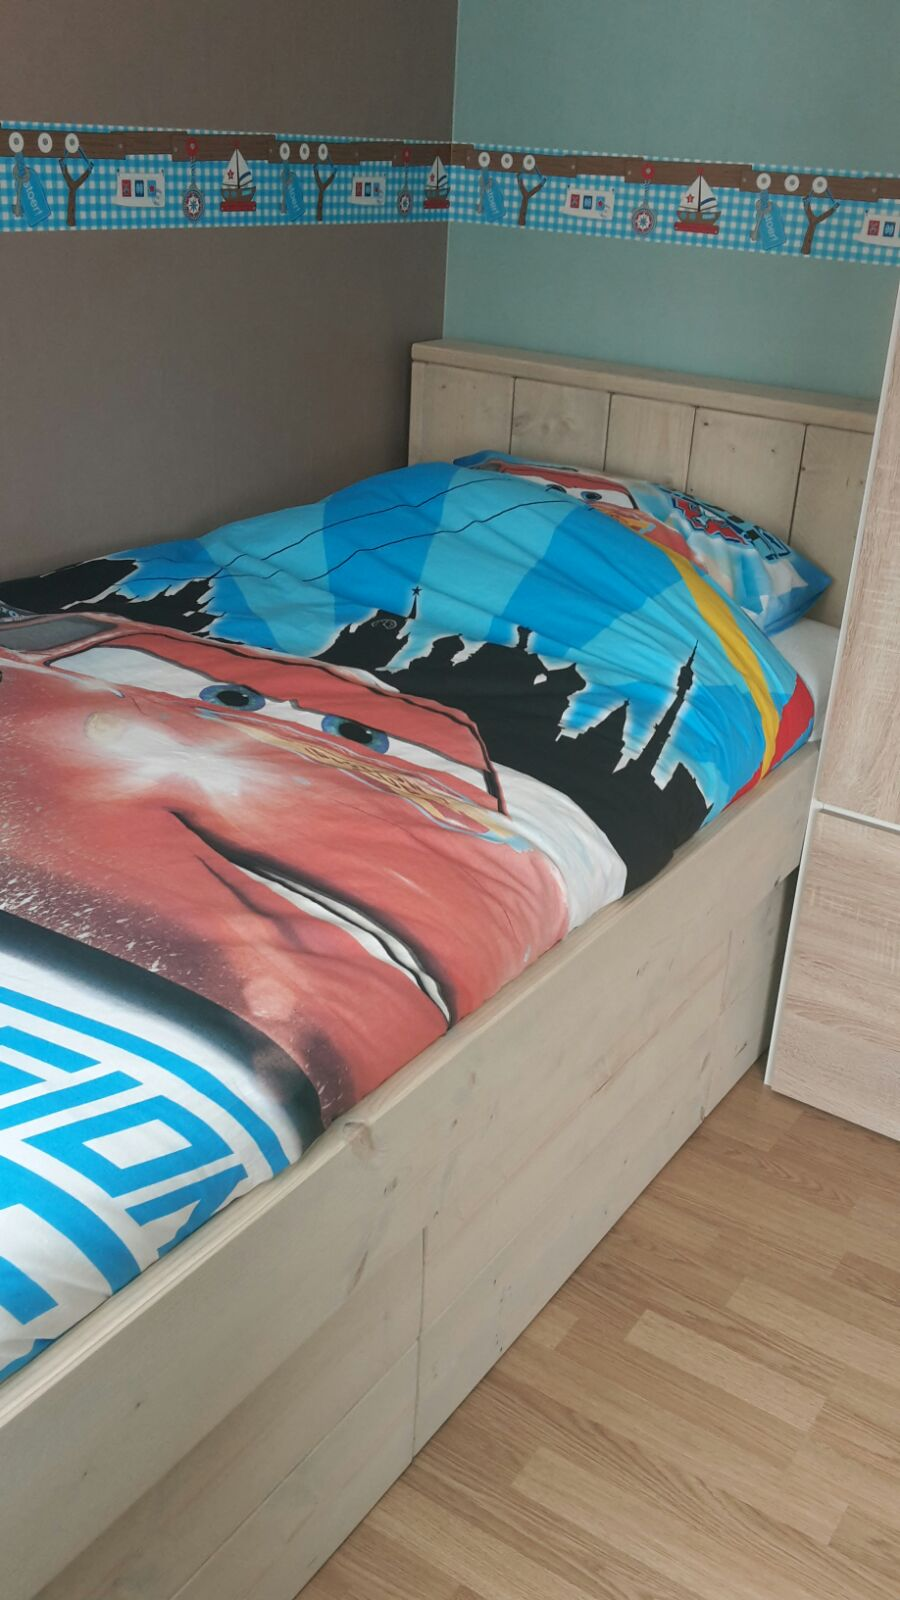 Steigerhout Bed 2 Persoons Bed Keano 1 Persoons